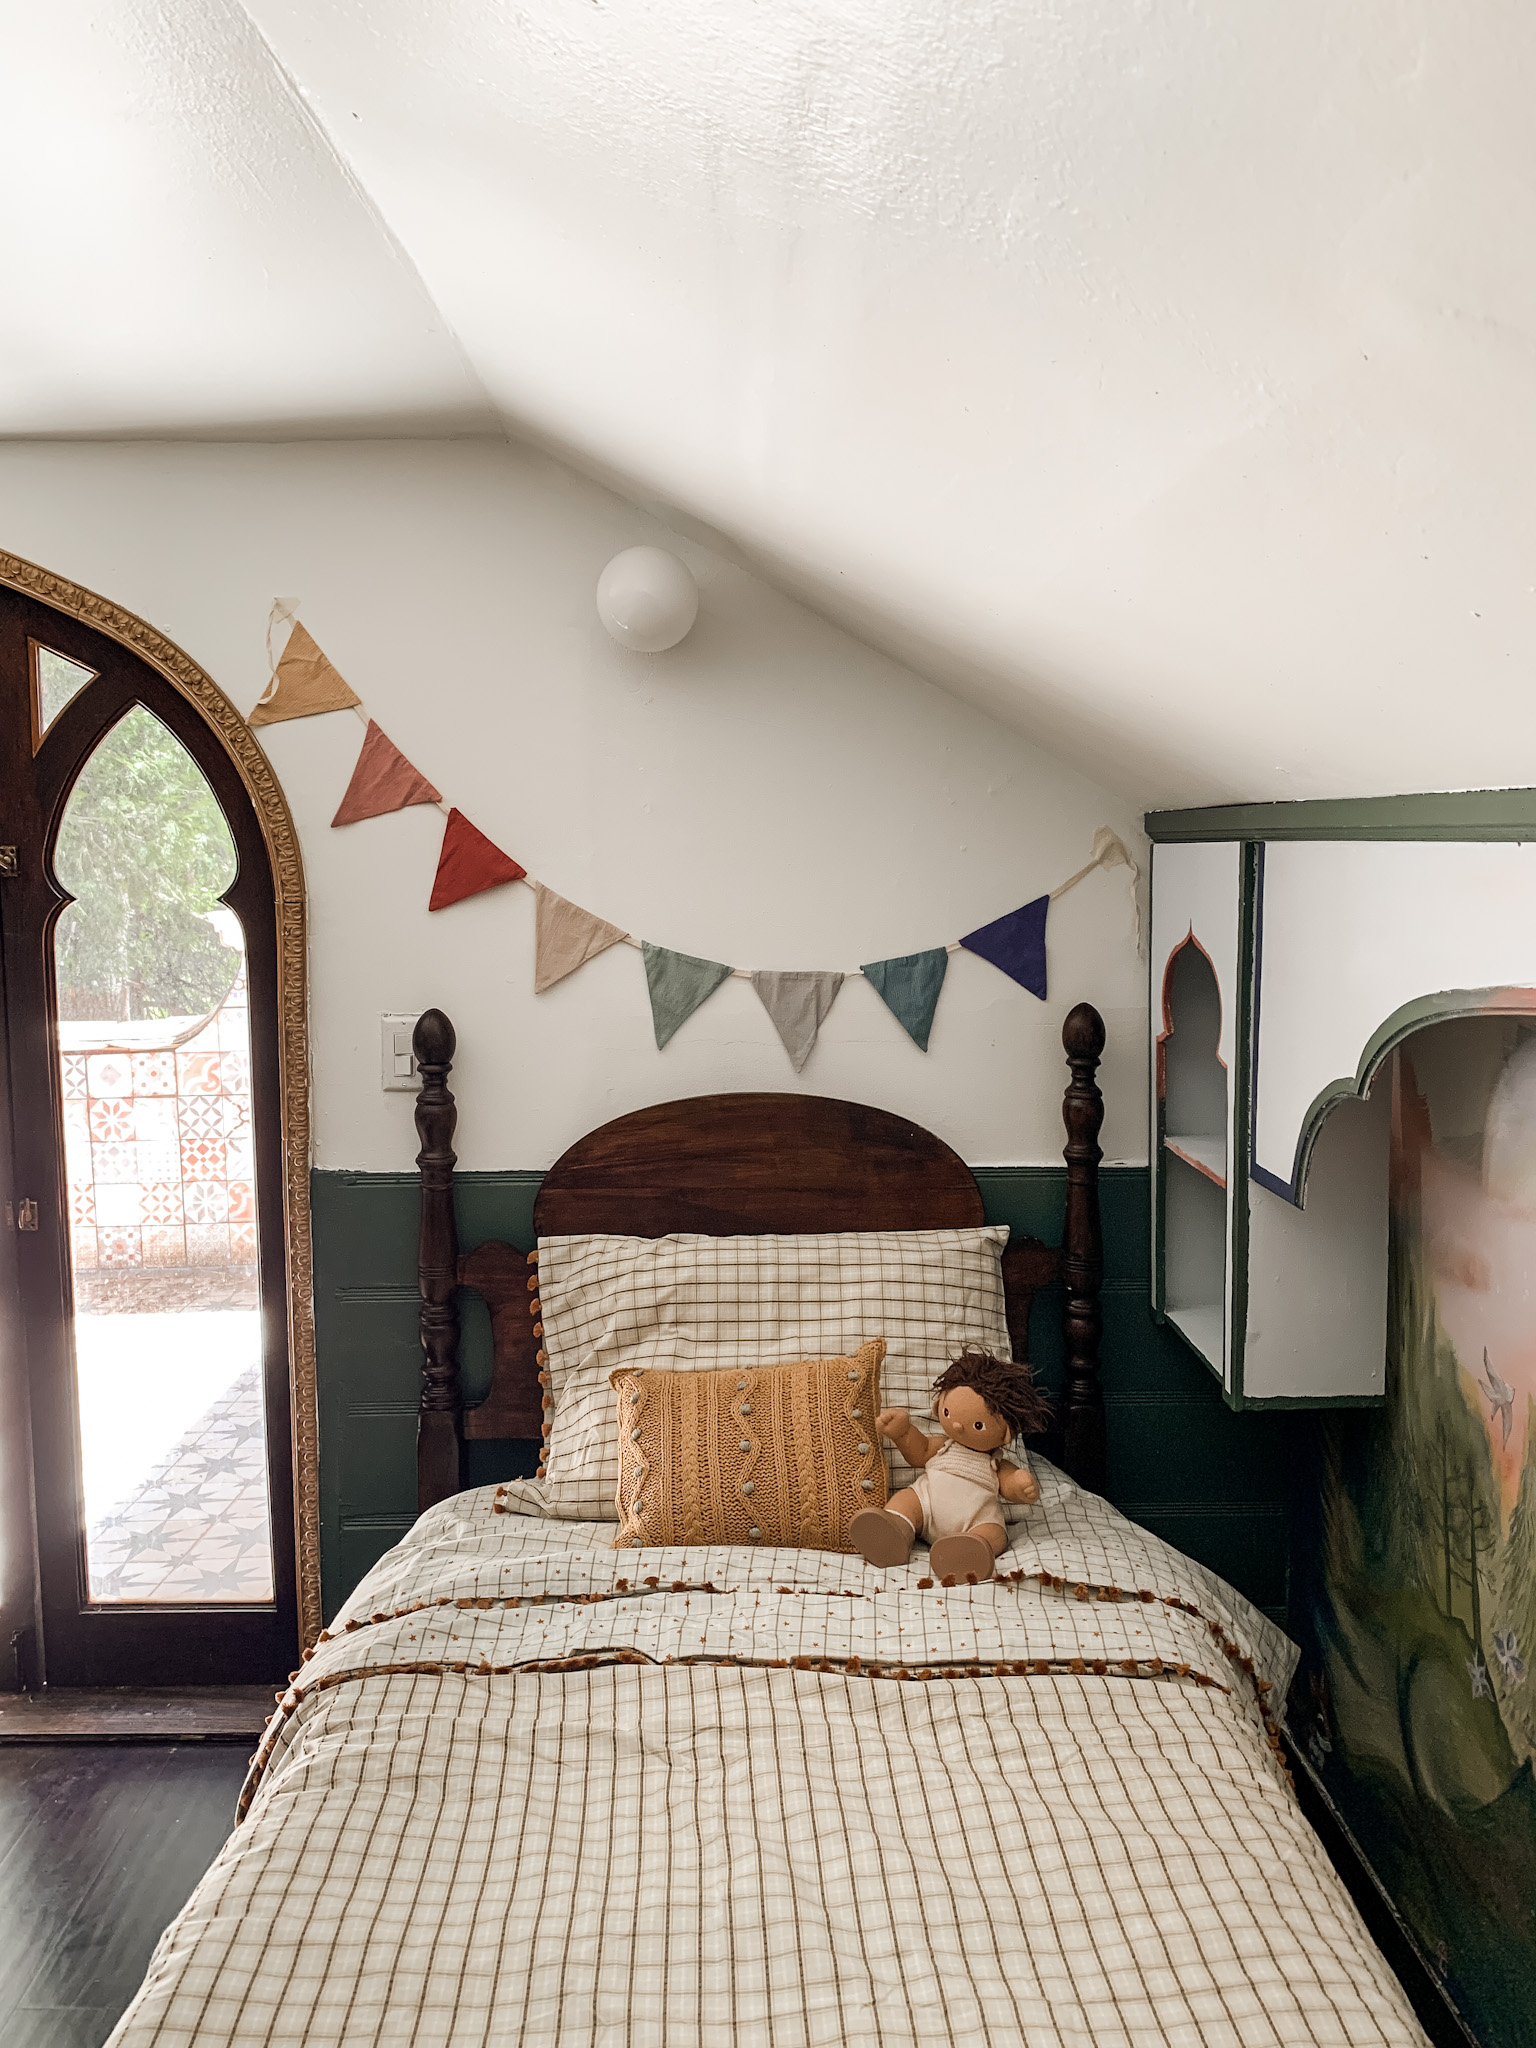 One Room Challenge Week 7 – Time to Decorate & Style the Attic Bedroom